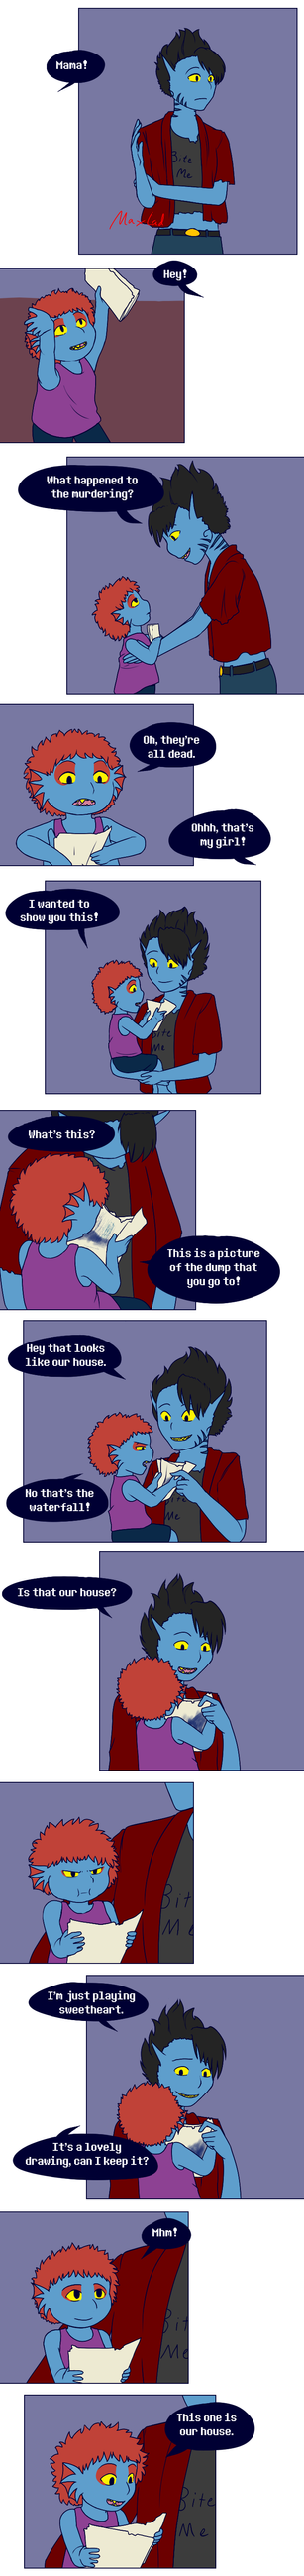 Her past page 4 by Maxlad